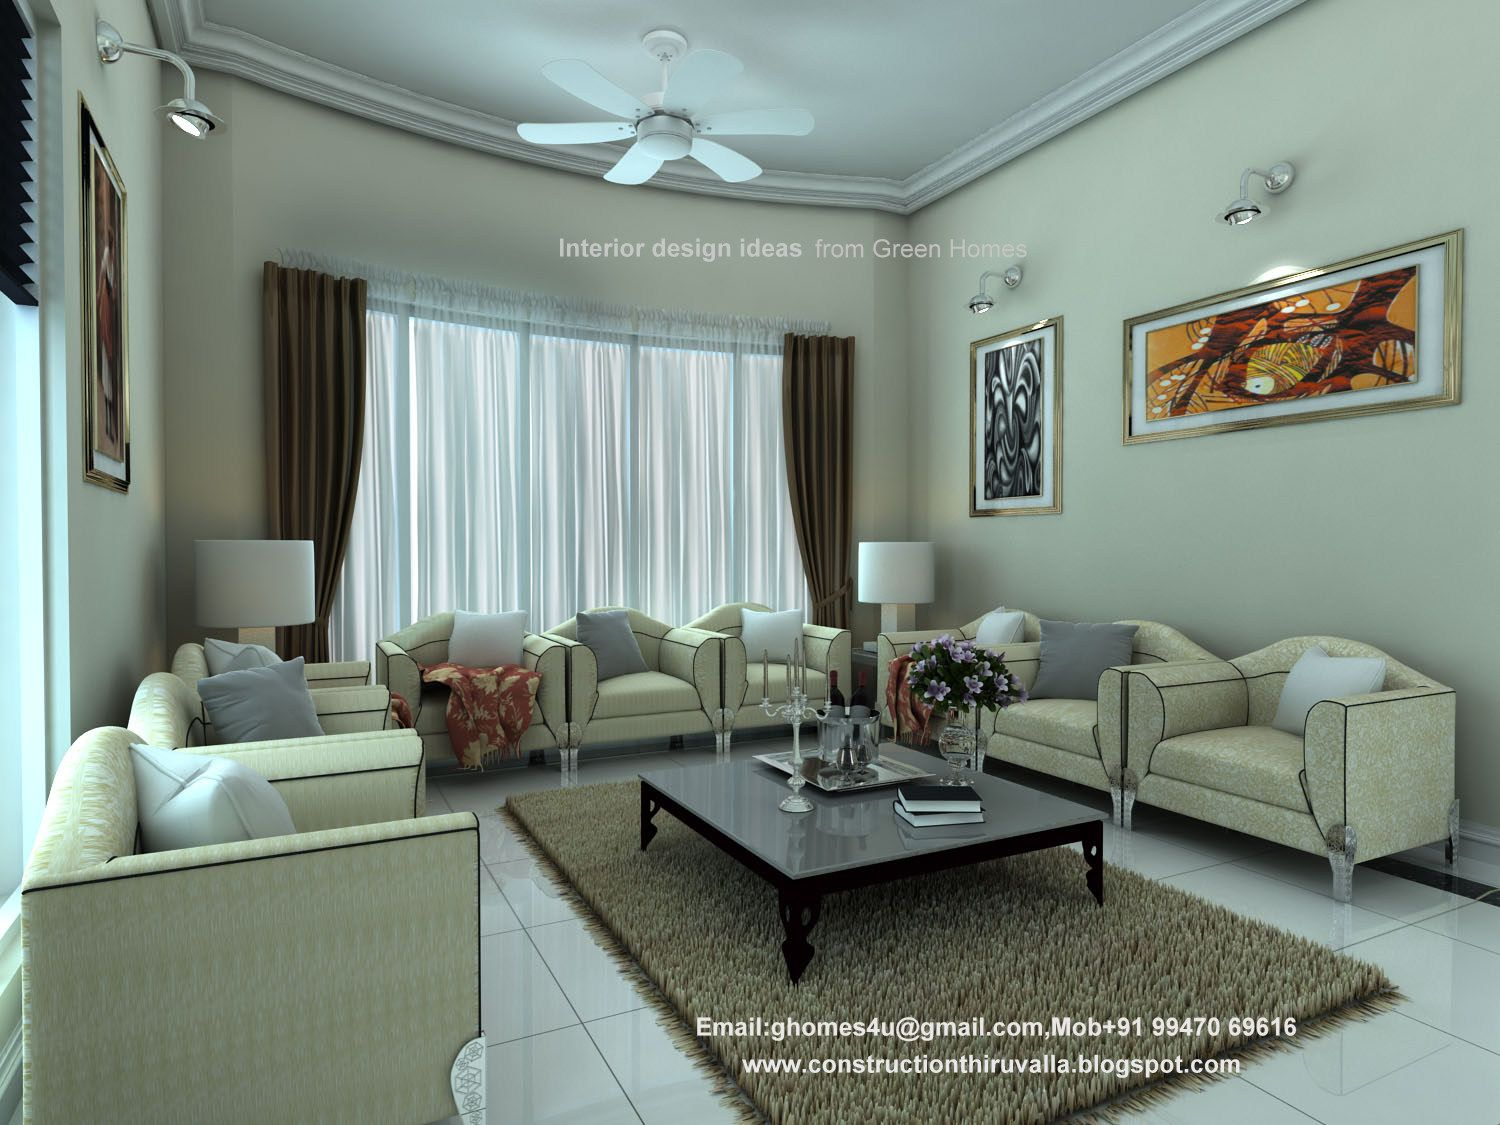 Plans Kerala Style Interior Home Designs Plan Flat Design Drawings